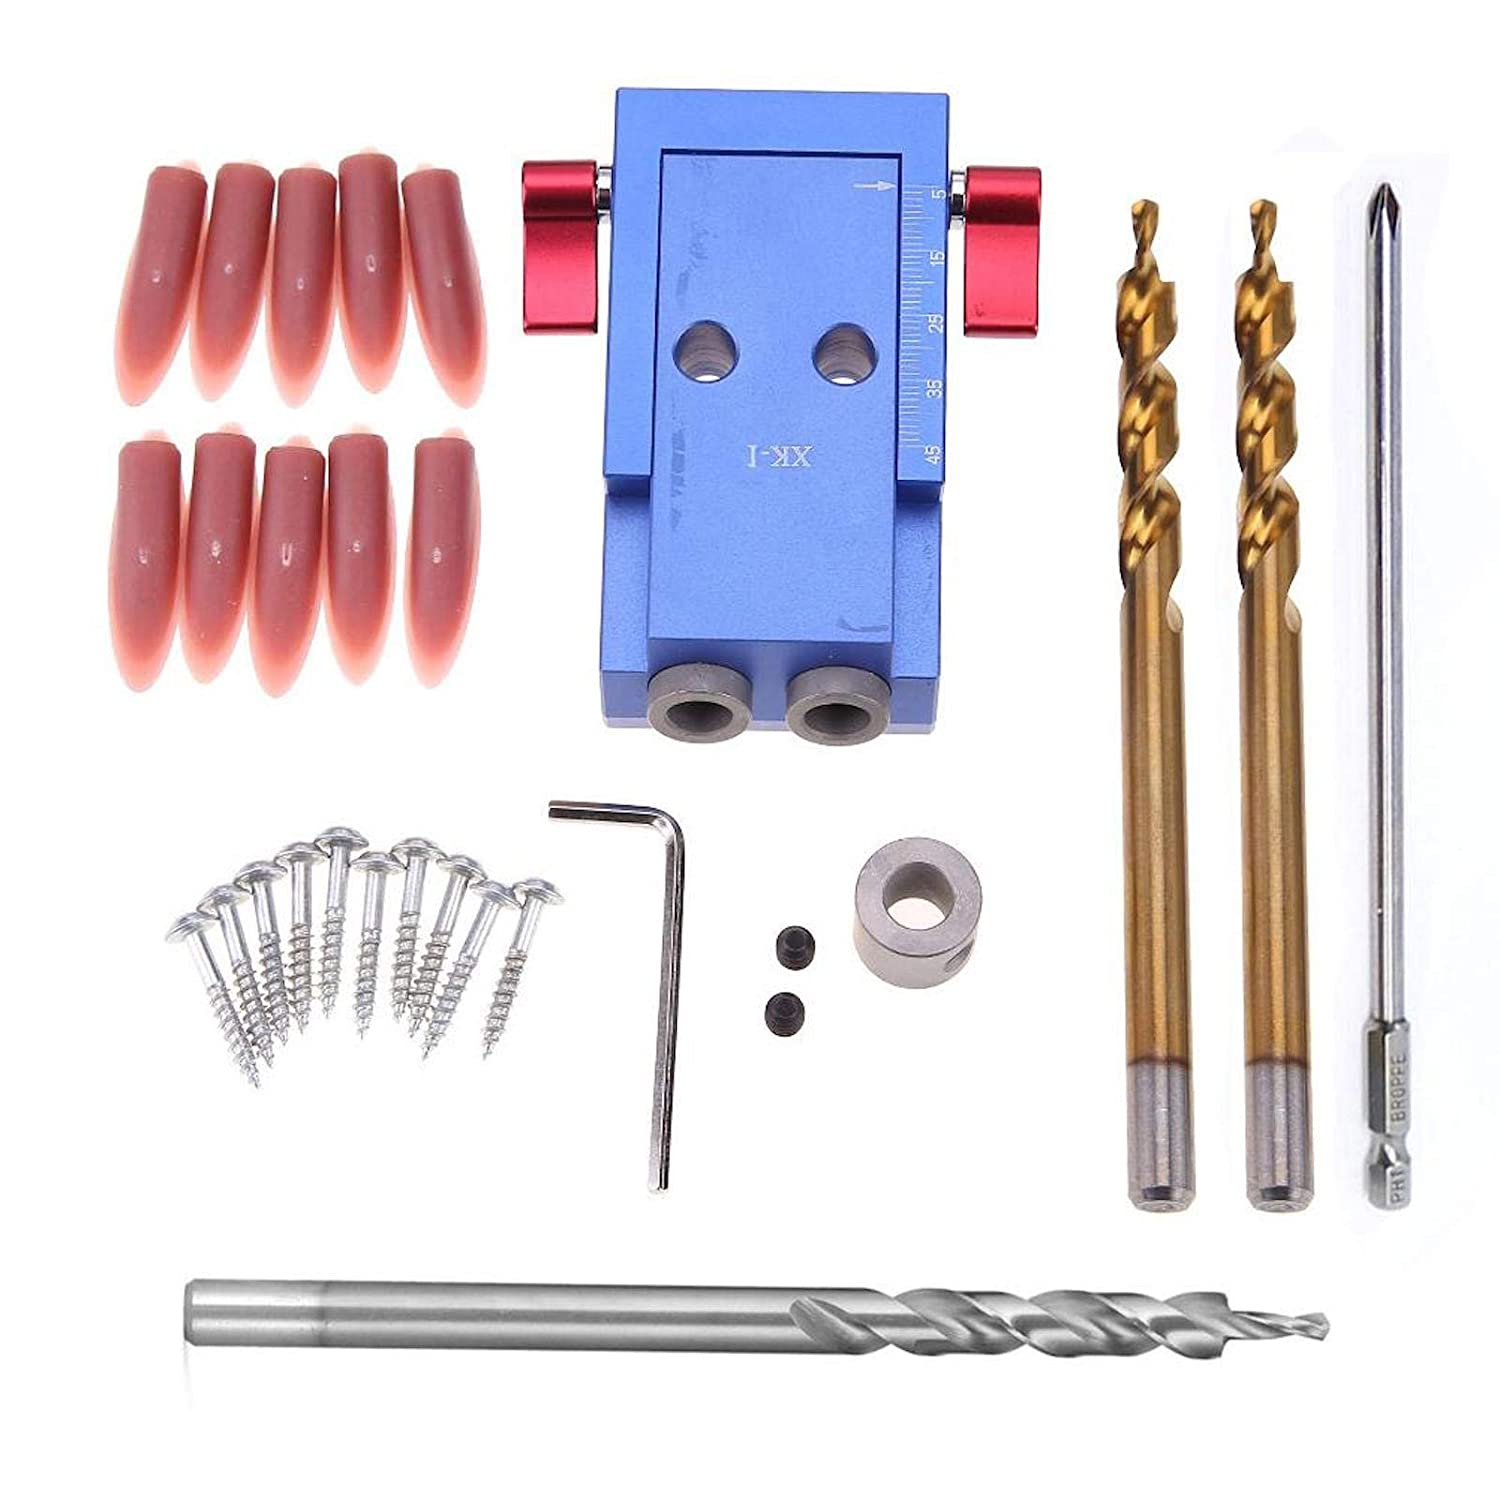 SXM-SXM Aluminum Alloy Upgrade Woodworking Pocket Hole Jig Kit Step Drill Bit Hole Puncher Locator Dowel Jig Set Woodworking Tools Drill